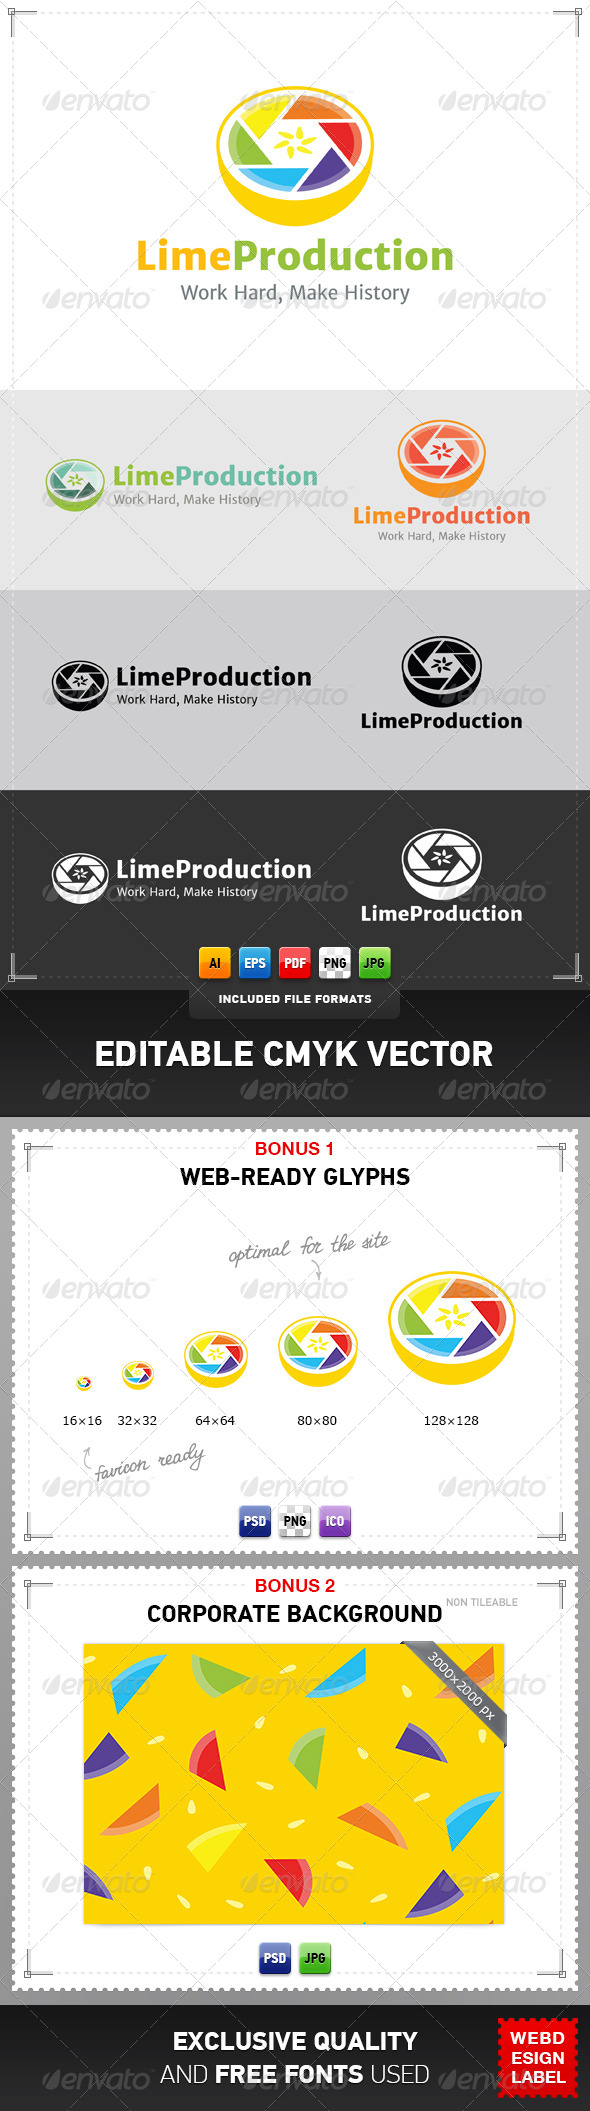 GraphicRiver Lime Production Logo 5080241